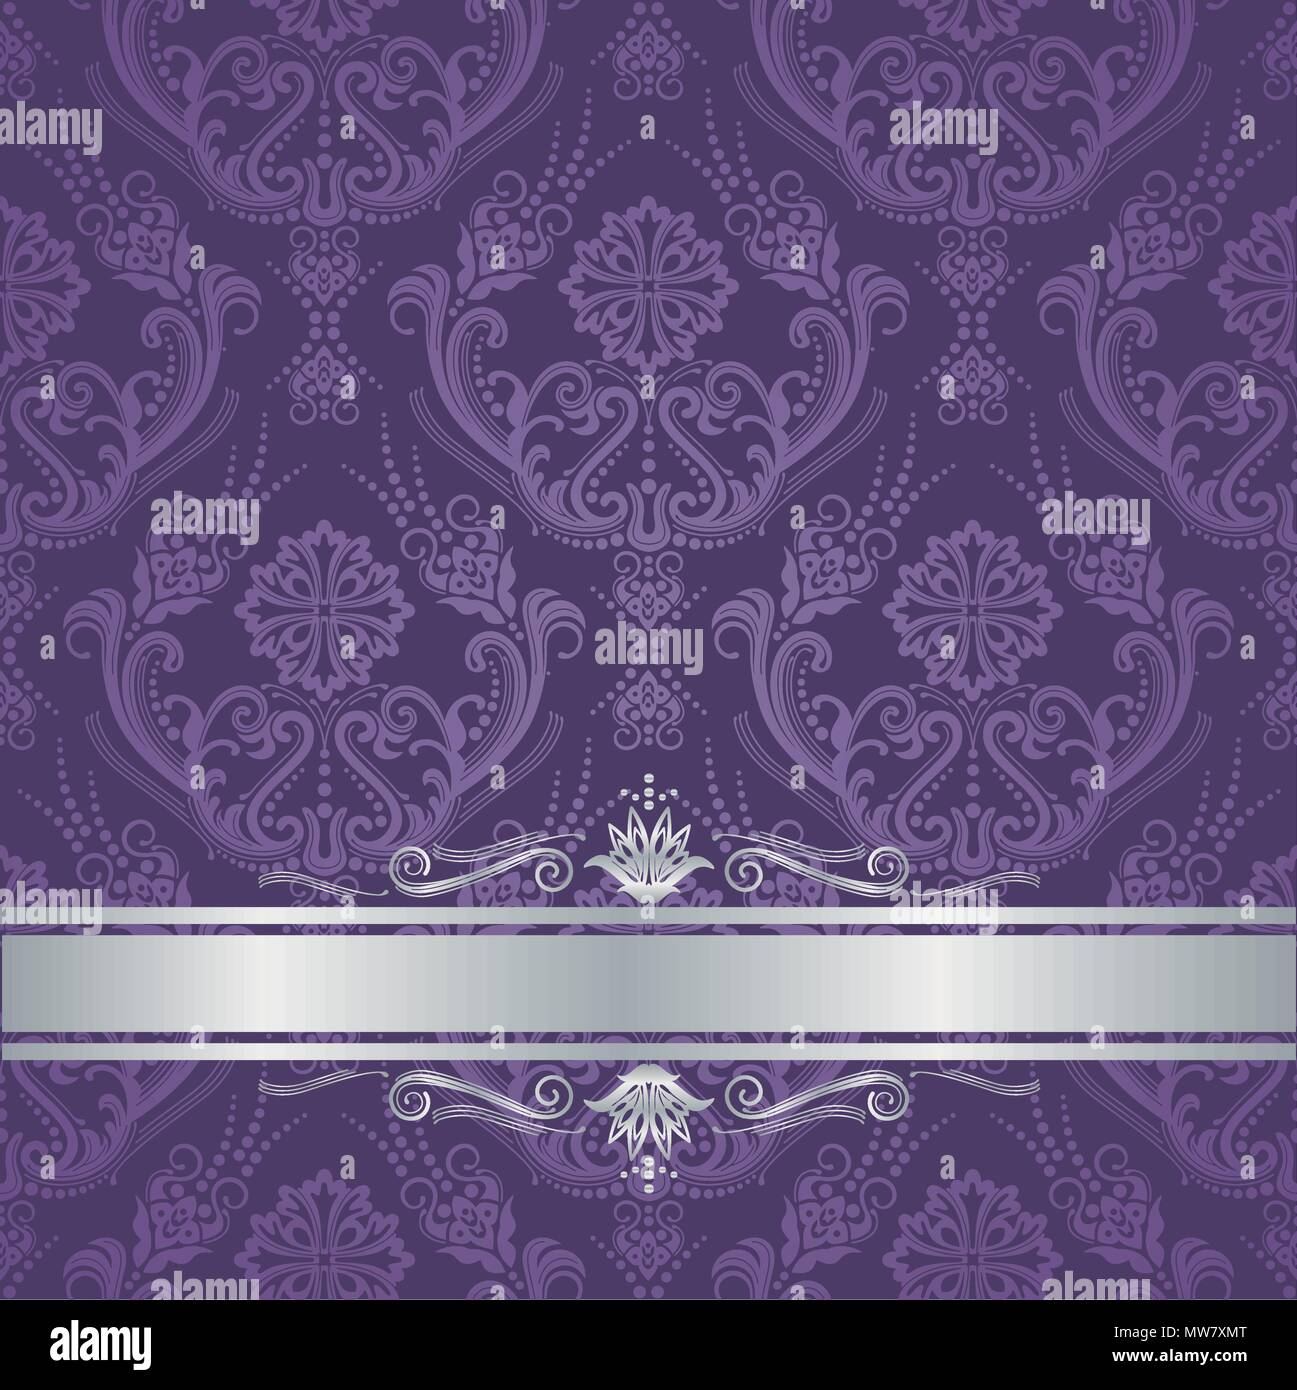 Luxury Purple Victorian Style Floral Damask Wallpaper Cover With Silver Border This Image Is A Vector Illustration